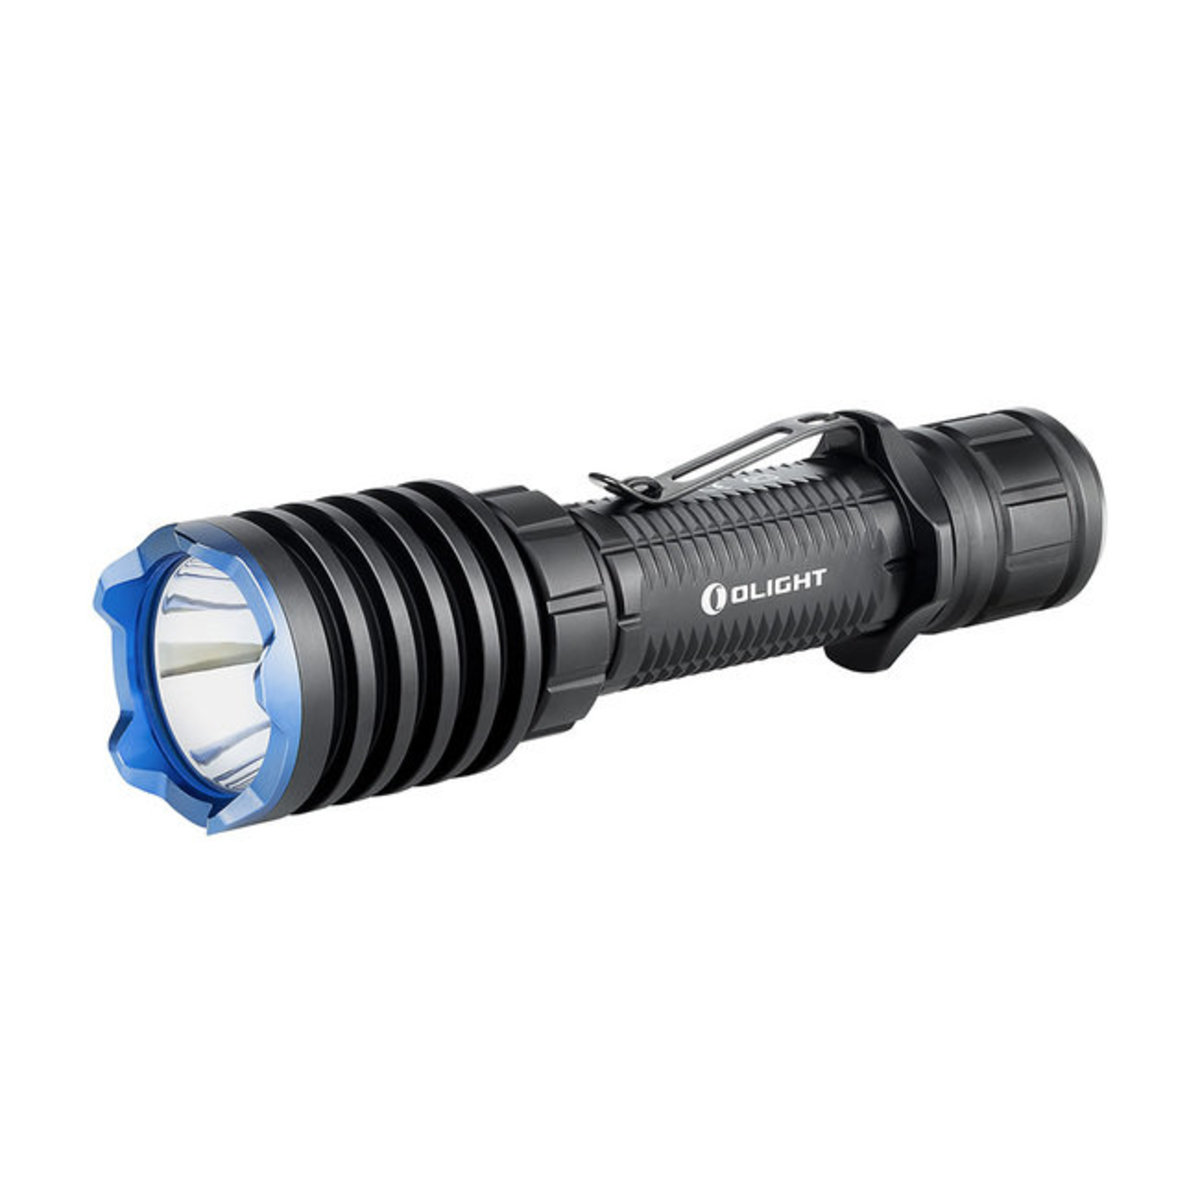 Warrior X Pro tactical flashlight 2250 lumens long shot 600M 5 years warranty